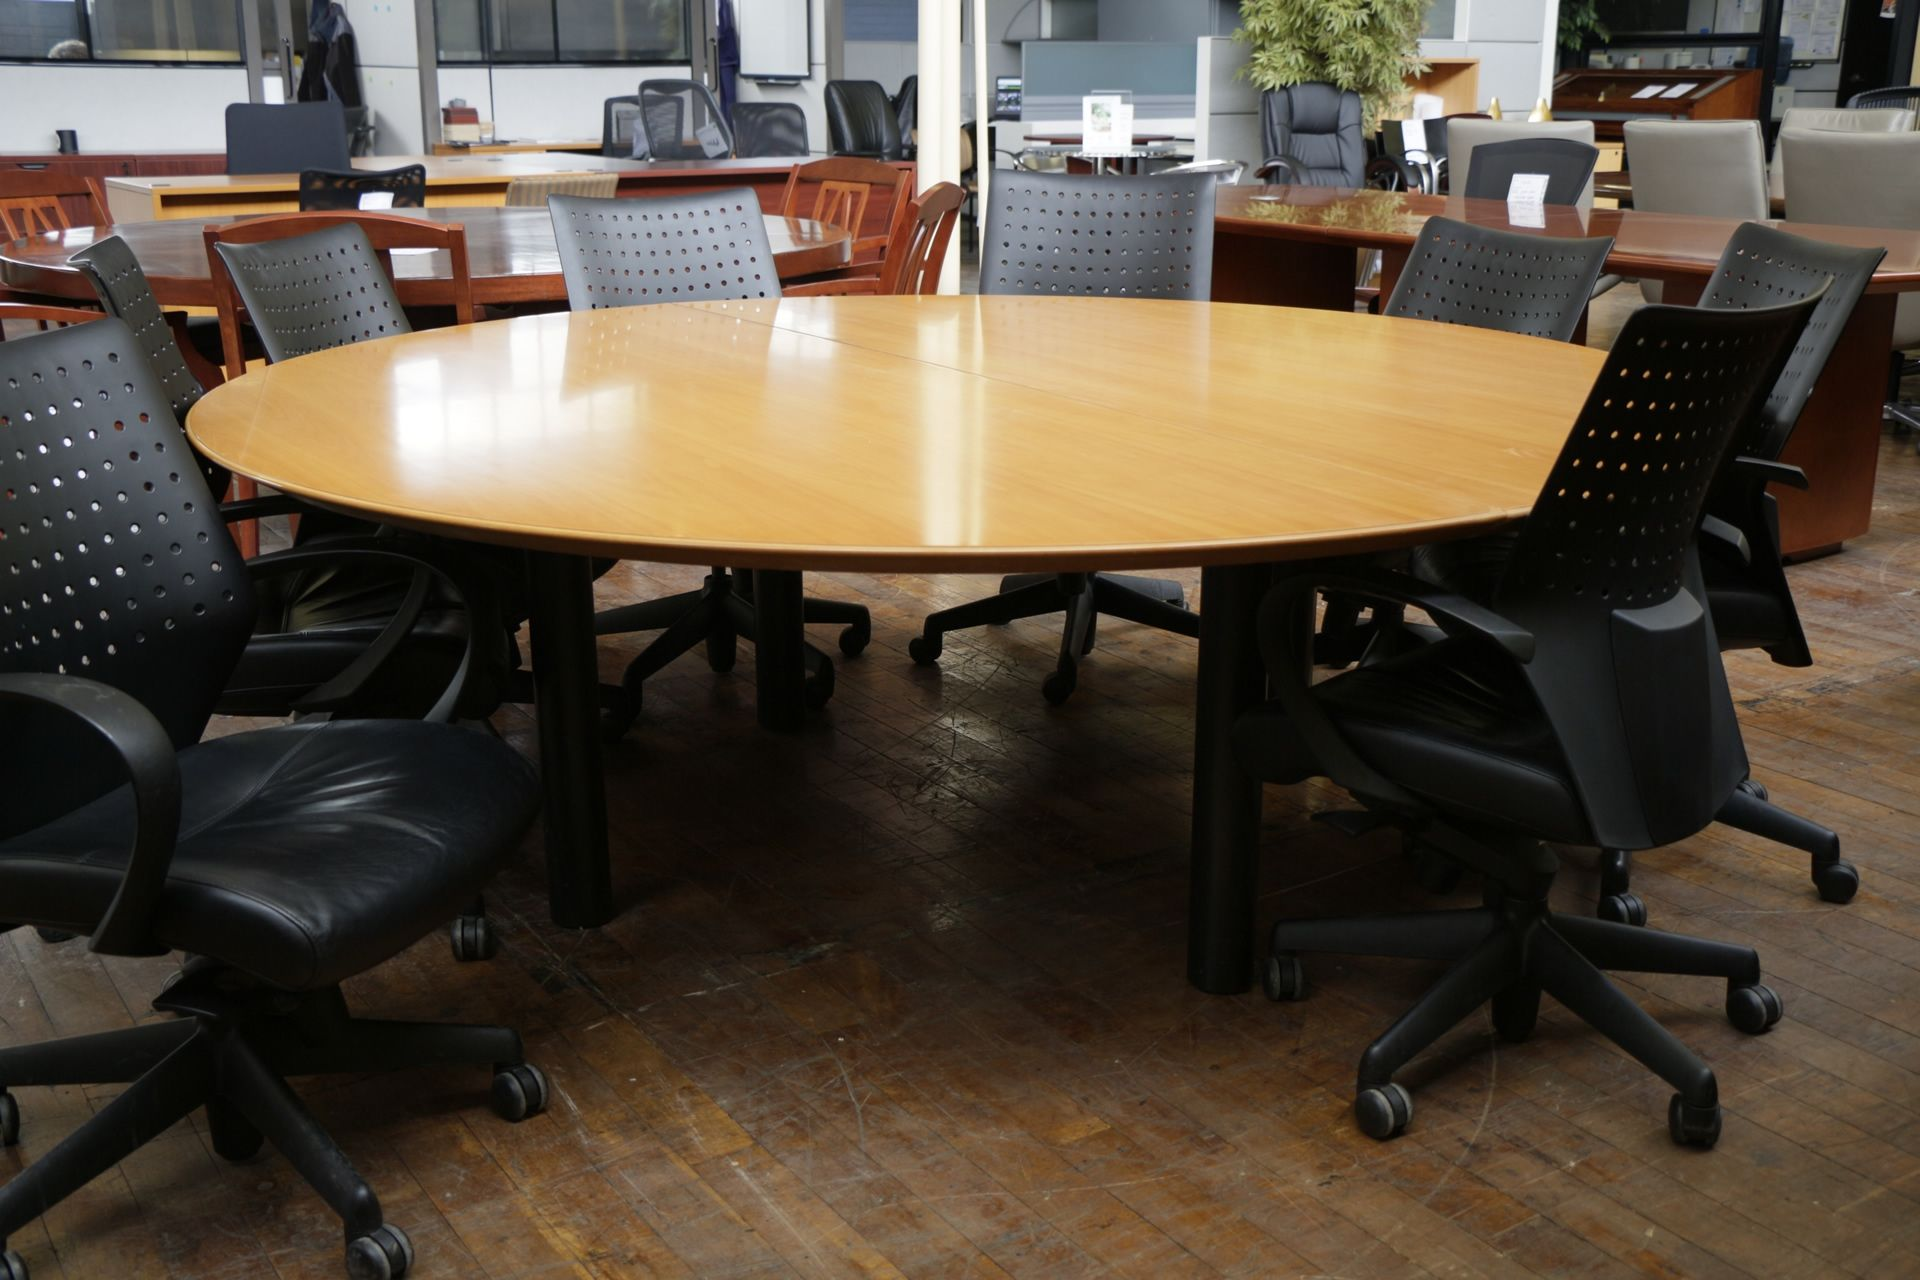 Round Conference Tables For argharts Pinterest